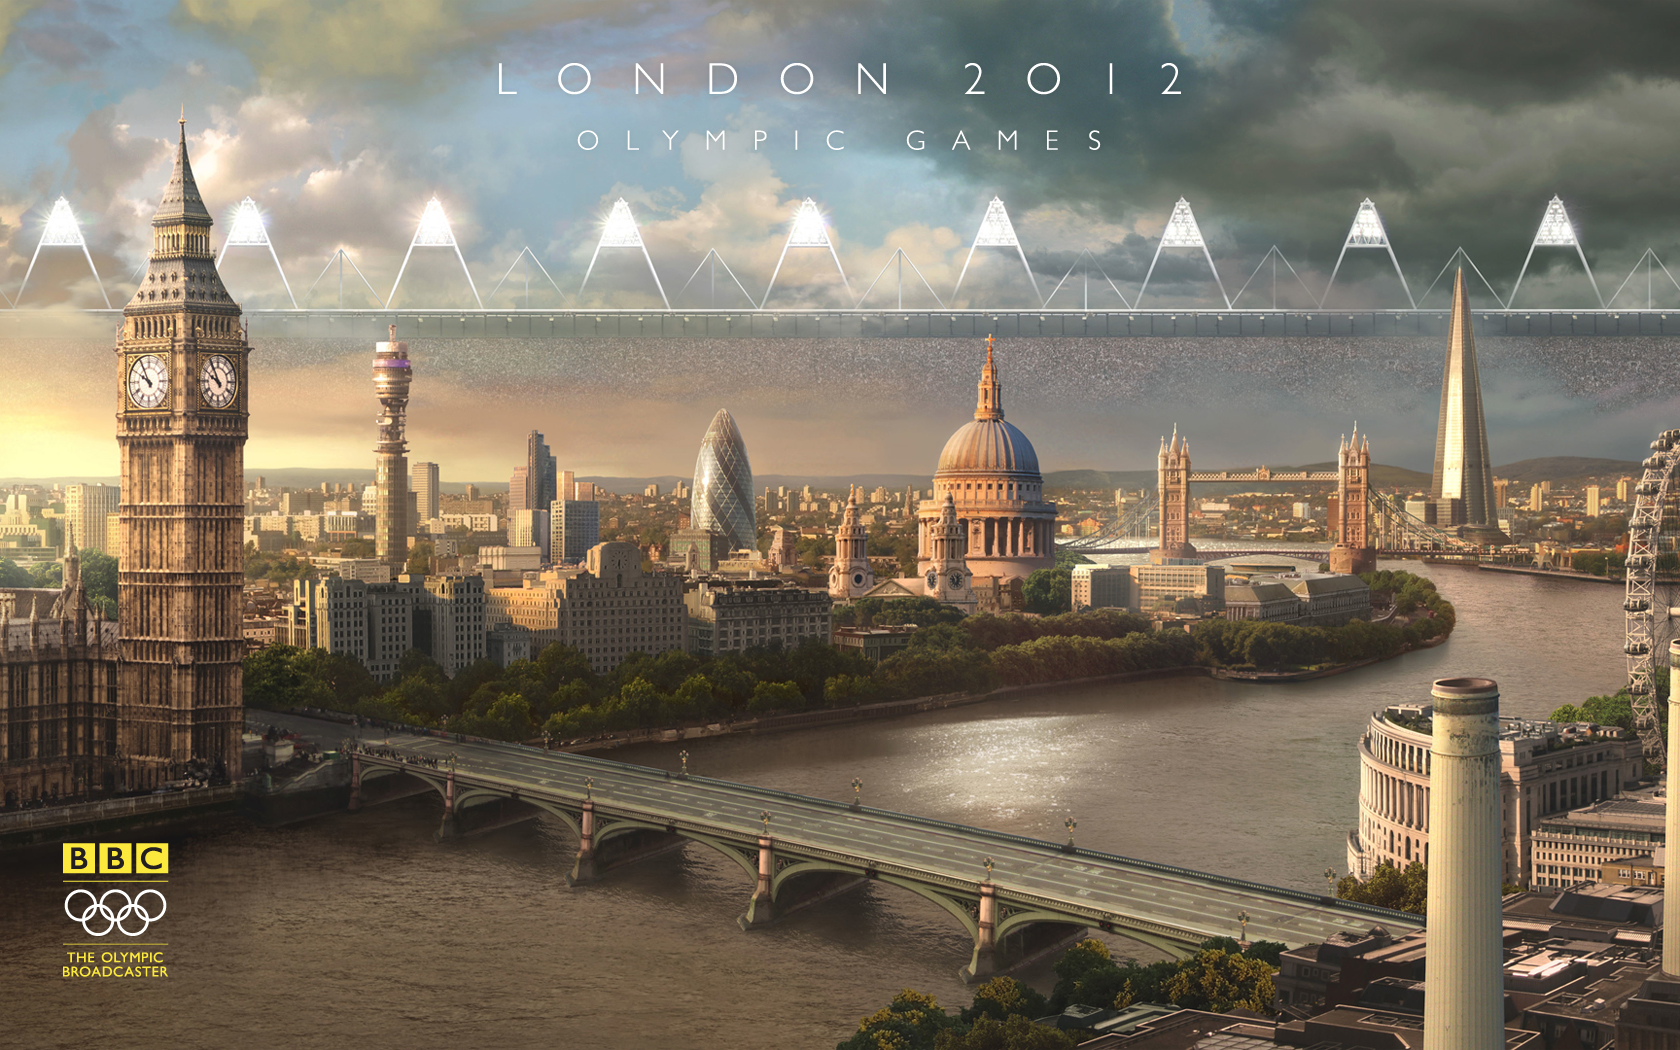 download our bbc olympics wallpaper for desktop mobiles